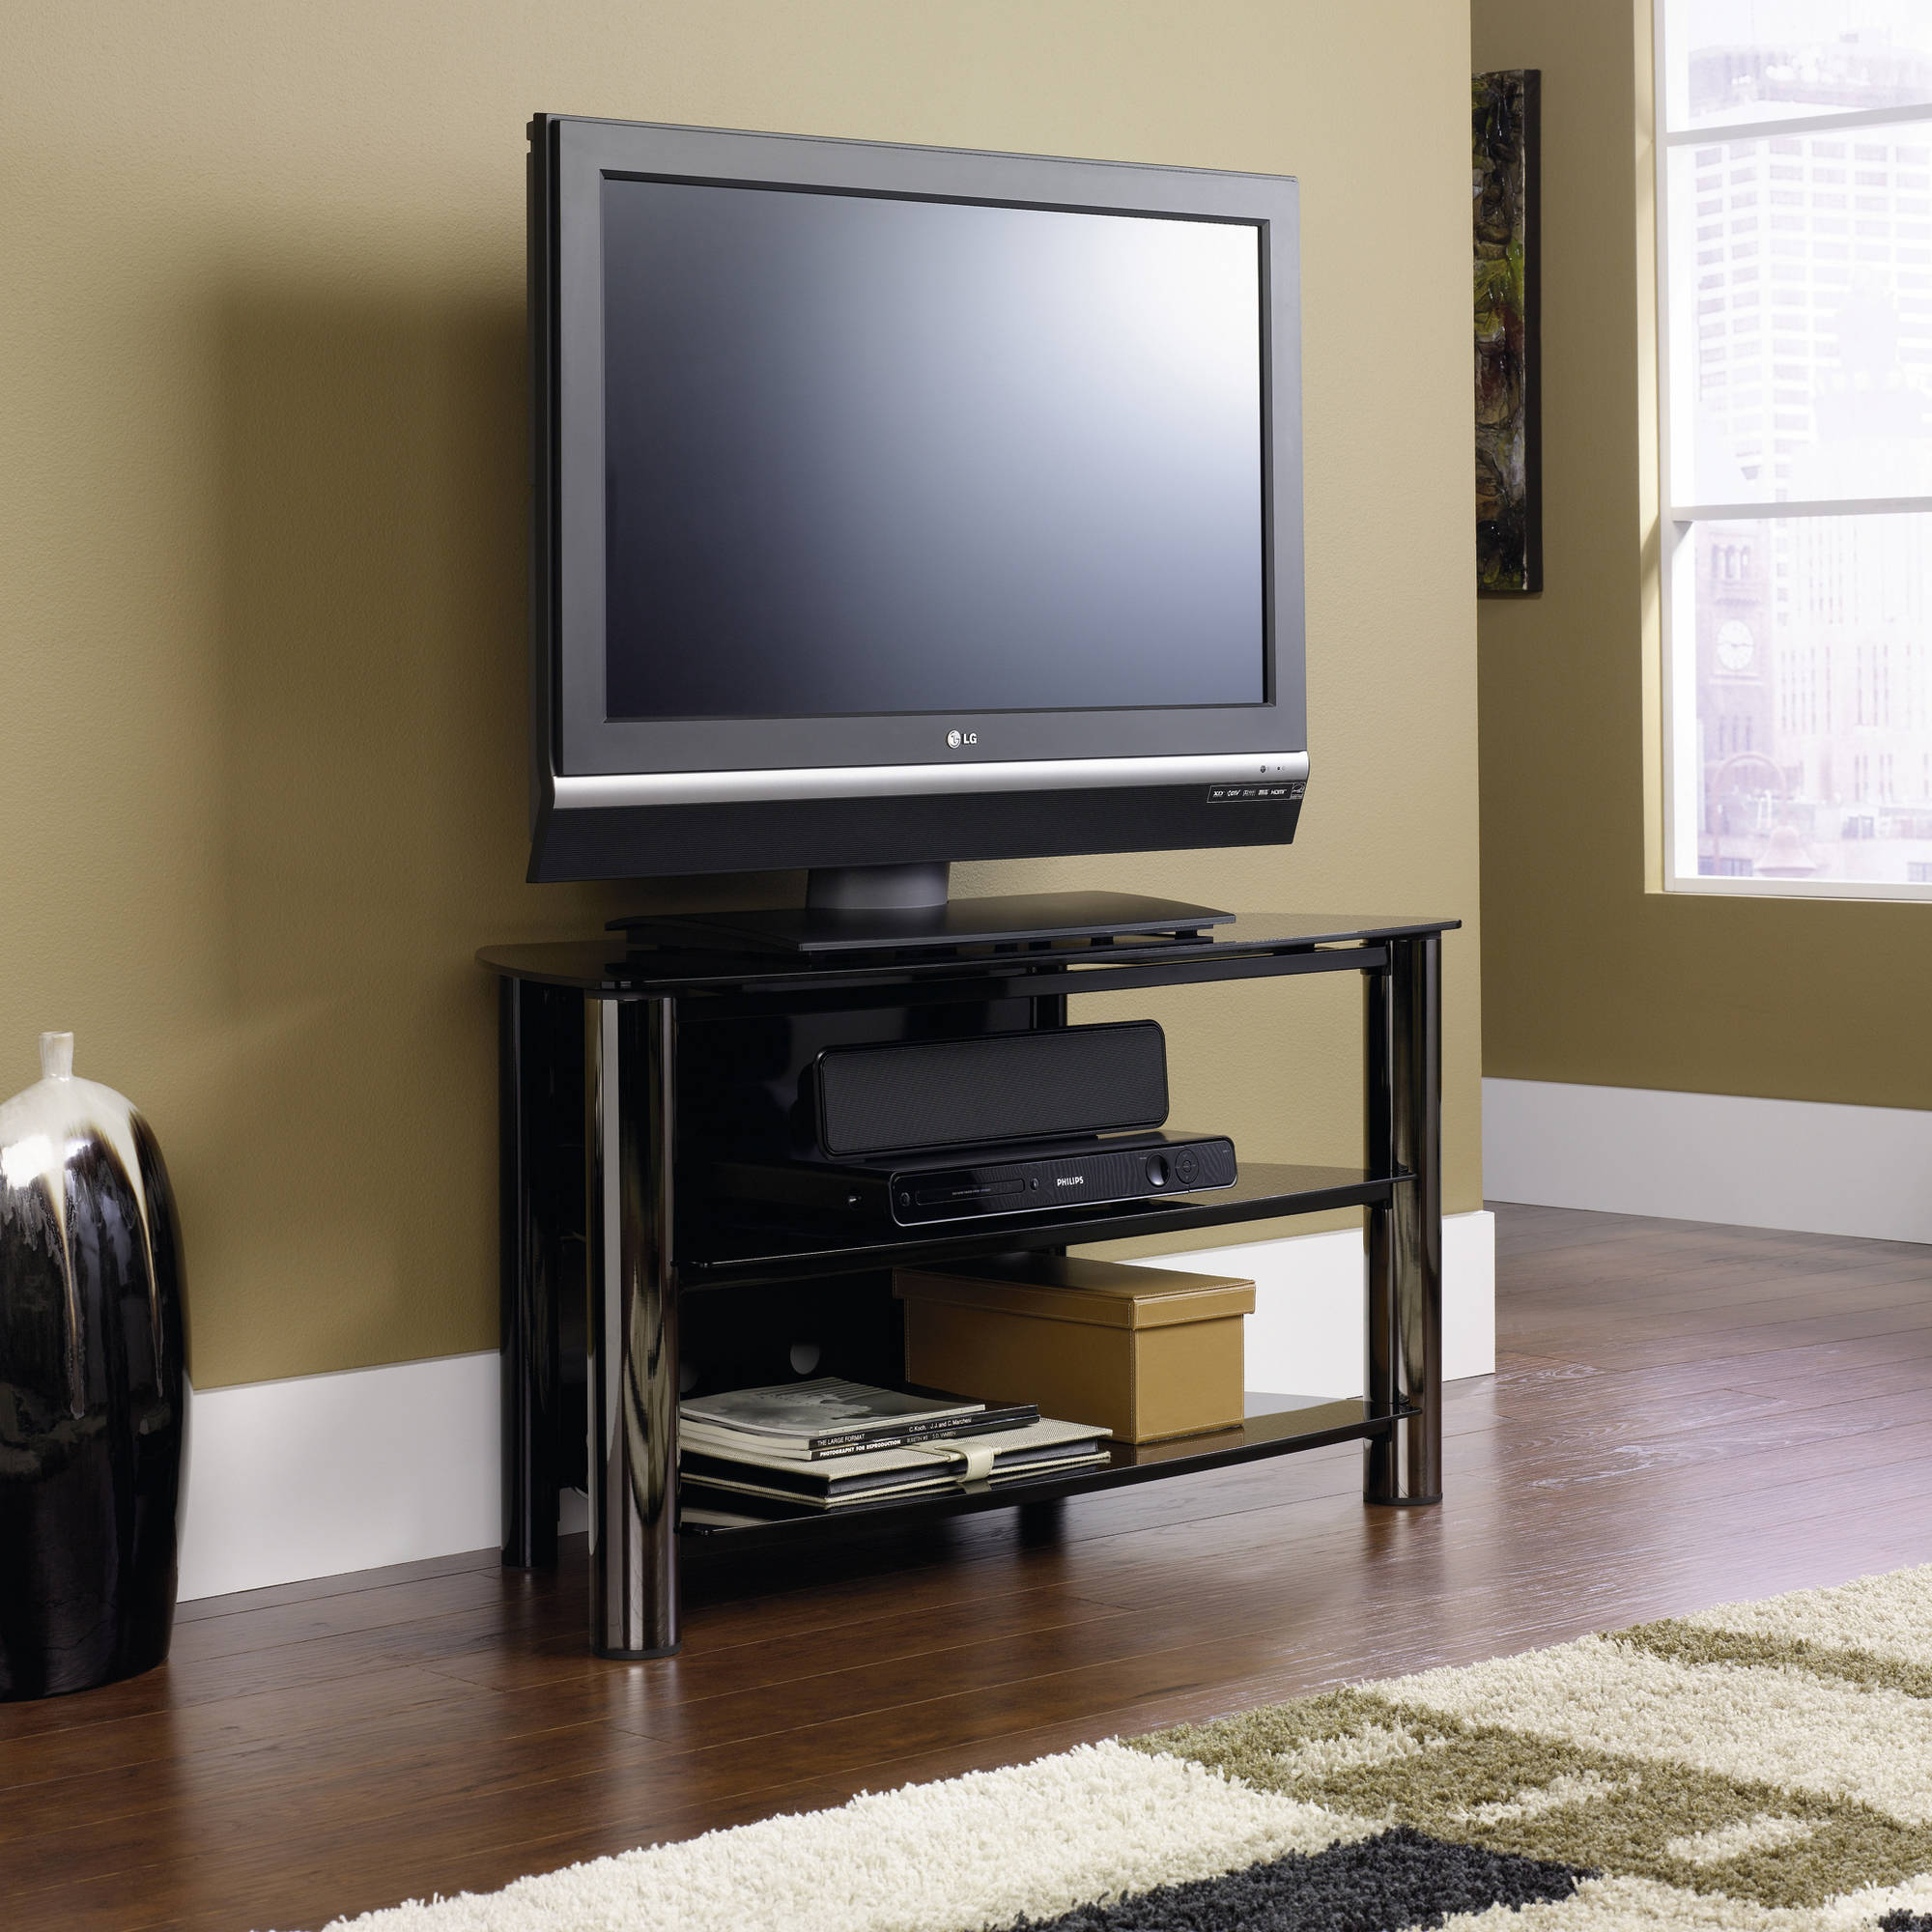 "Sauder Chroma Black Panel TV Stand for TVs up to 42"" Wide"